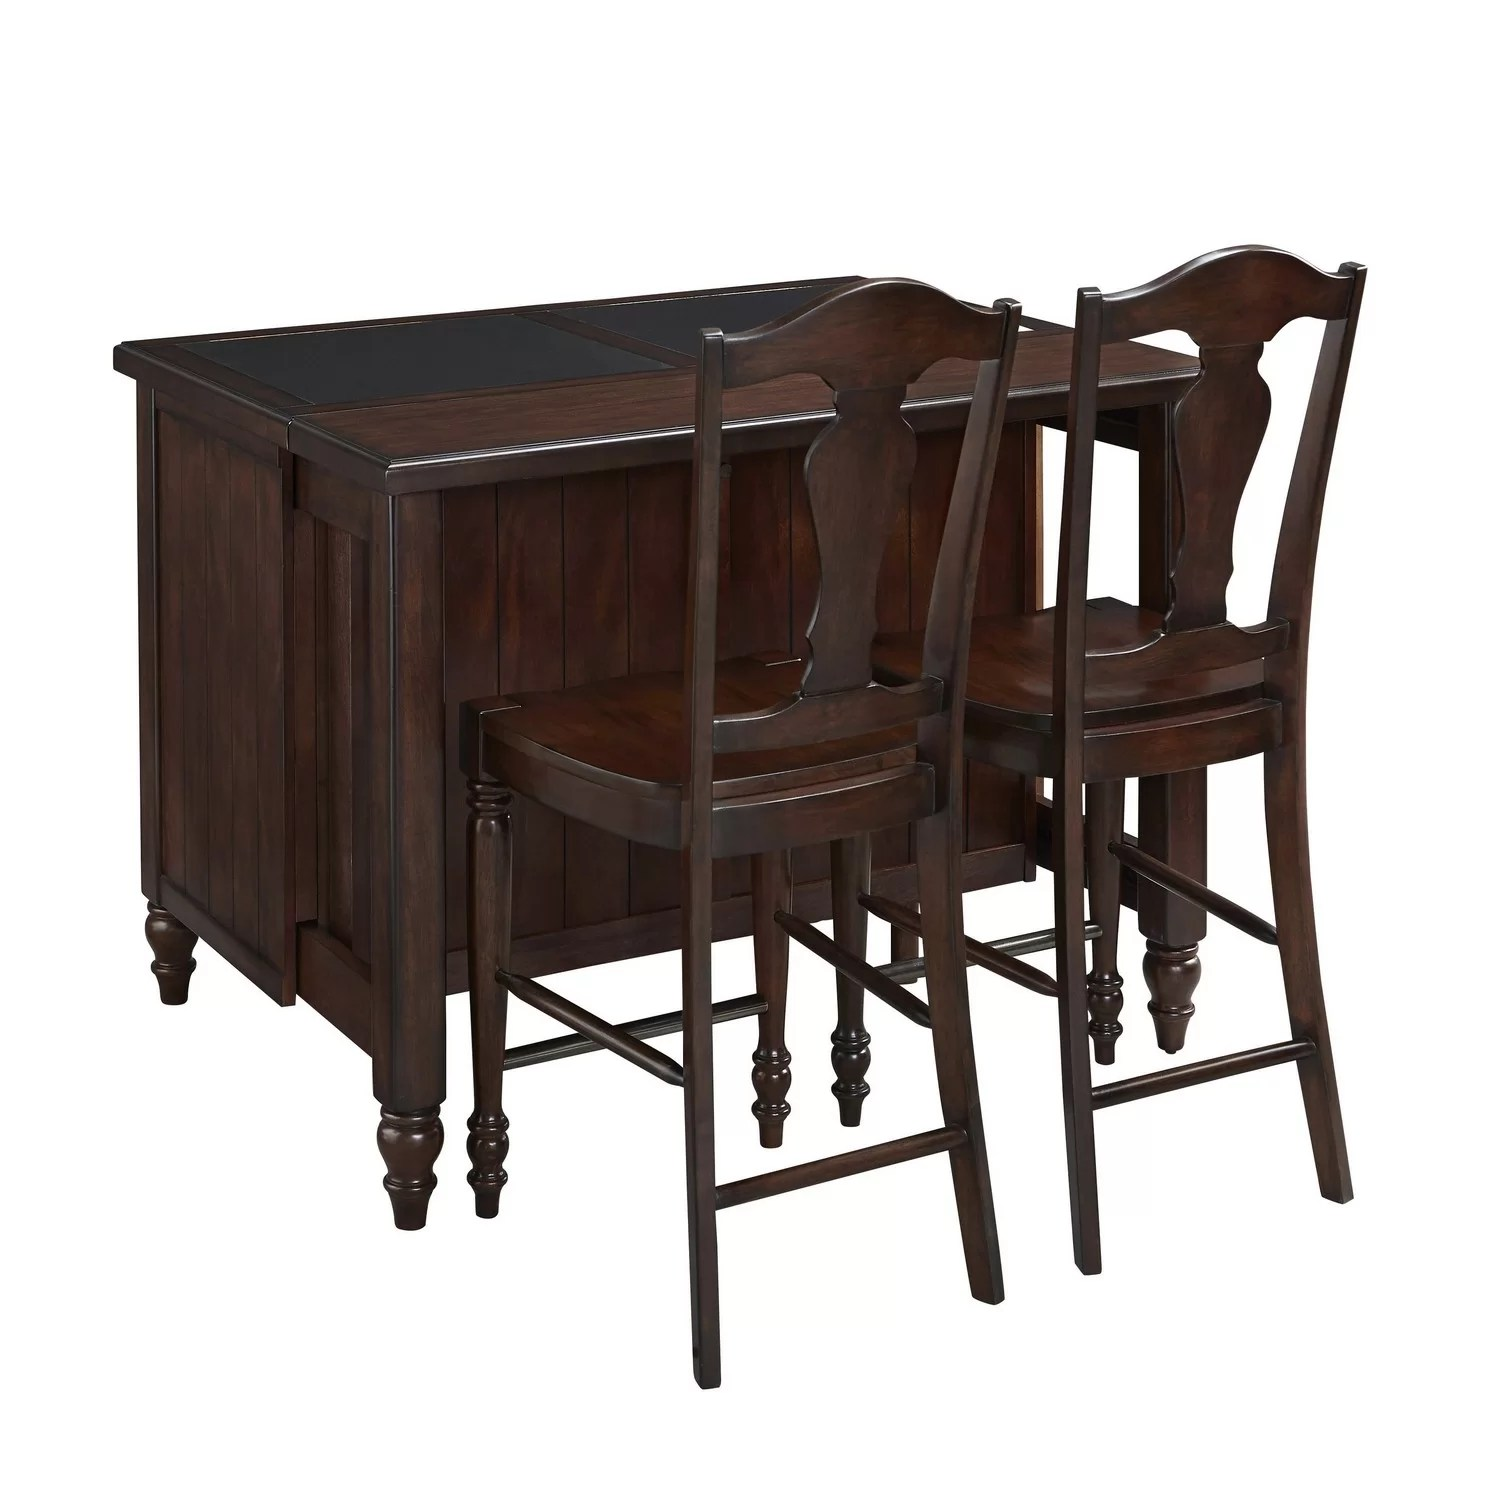 wayfair kitchen stools refinished cabinets home styles country comfort 3 piece island set